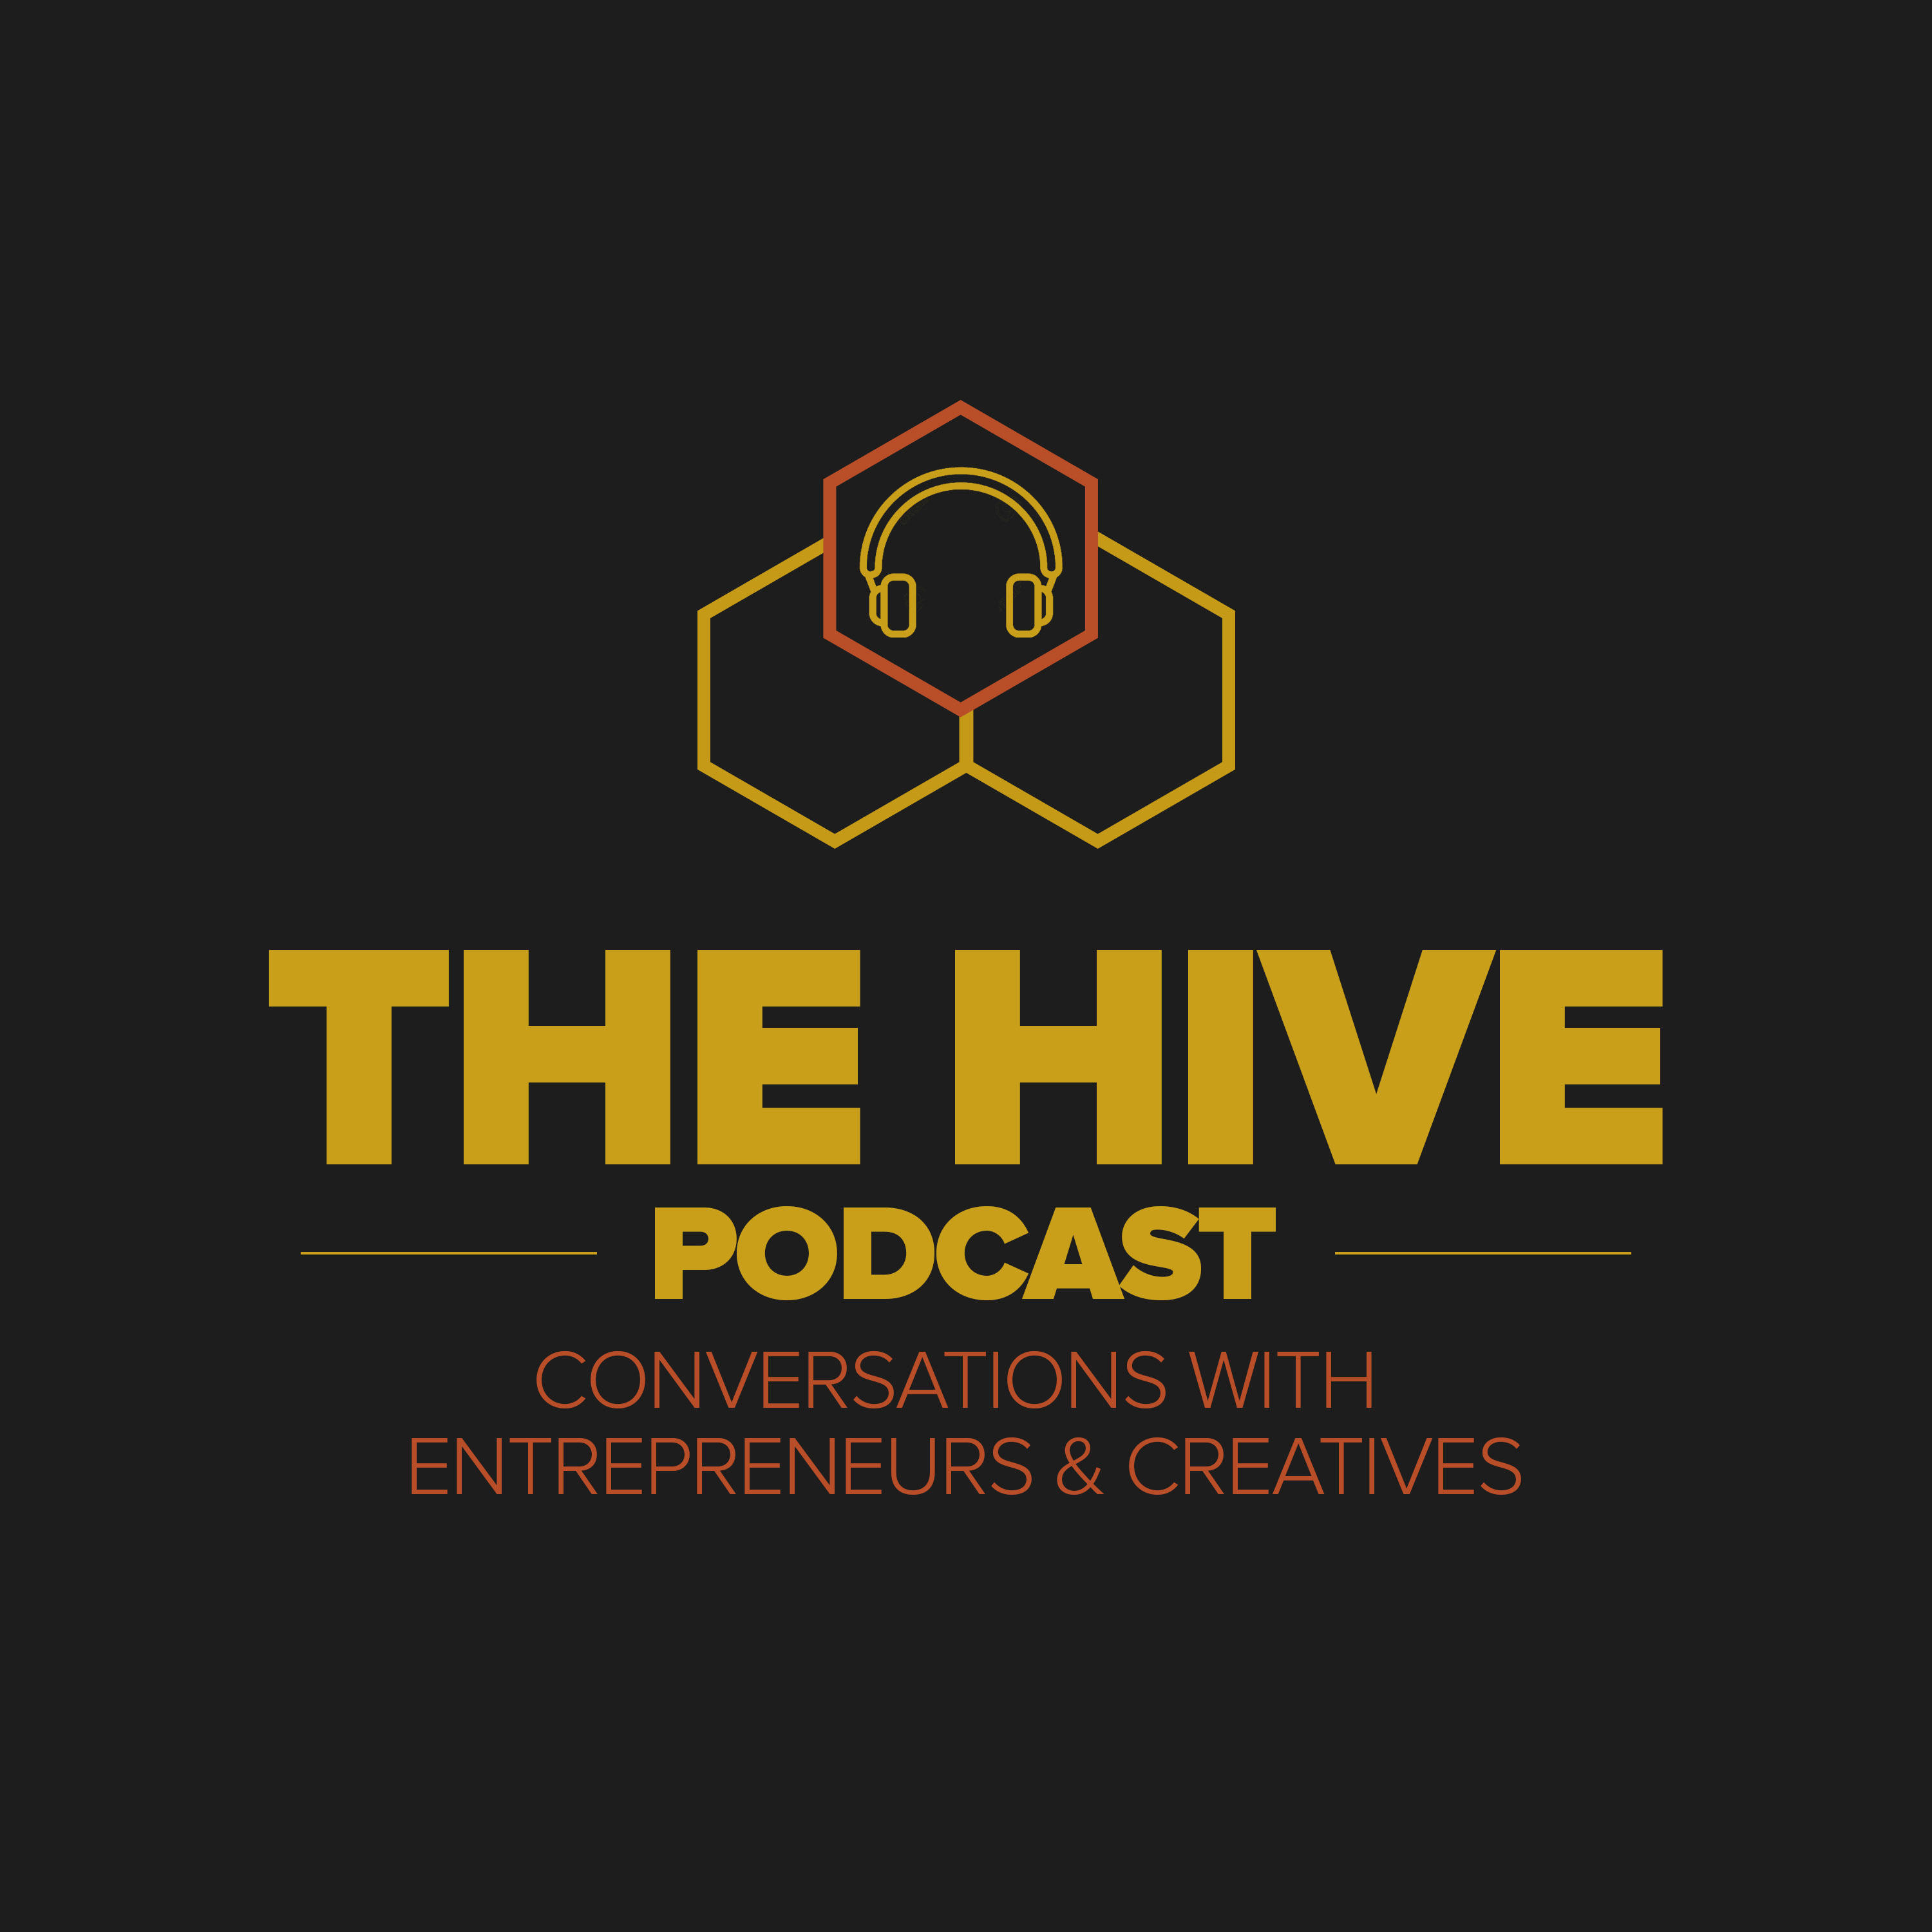 The Hive Podcast